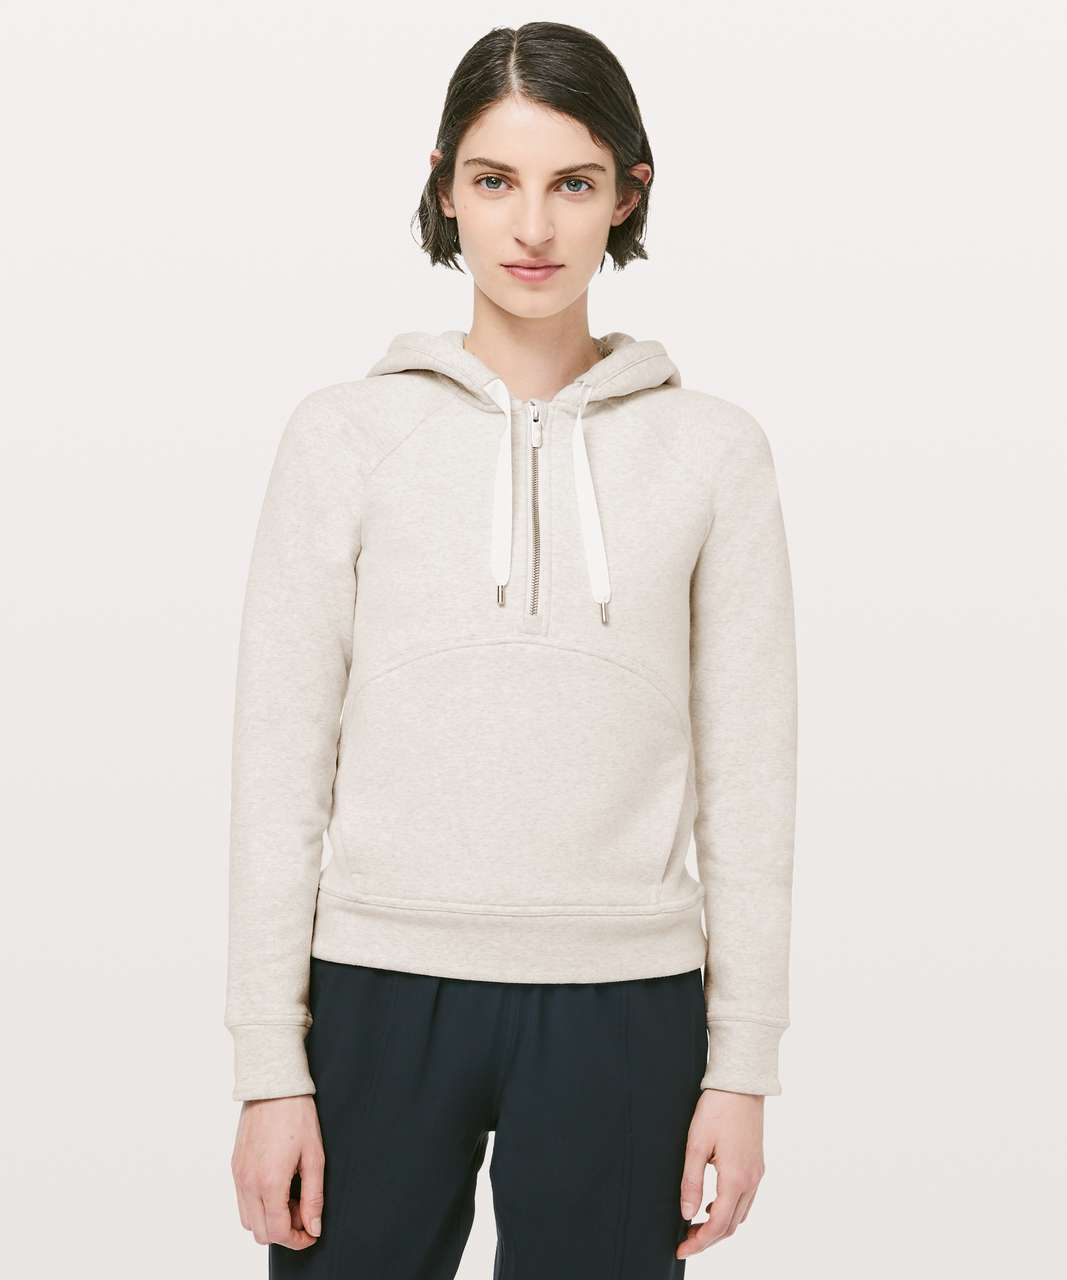 Lululemon Catch A Moment Hoodie - Heathered Light Ivory / Light Ivory